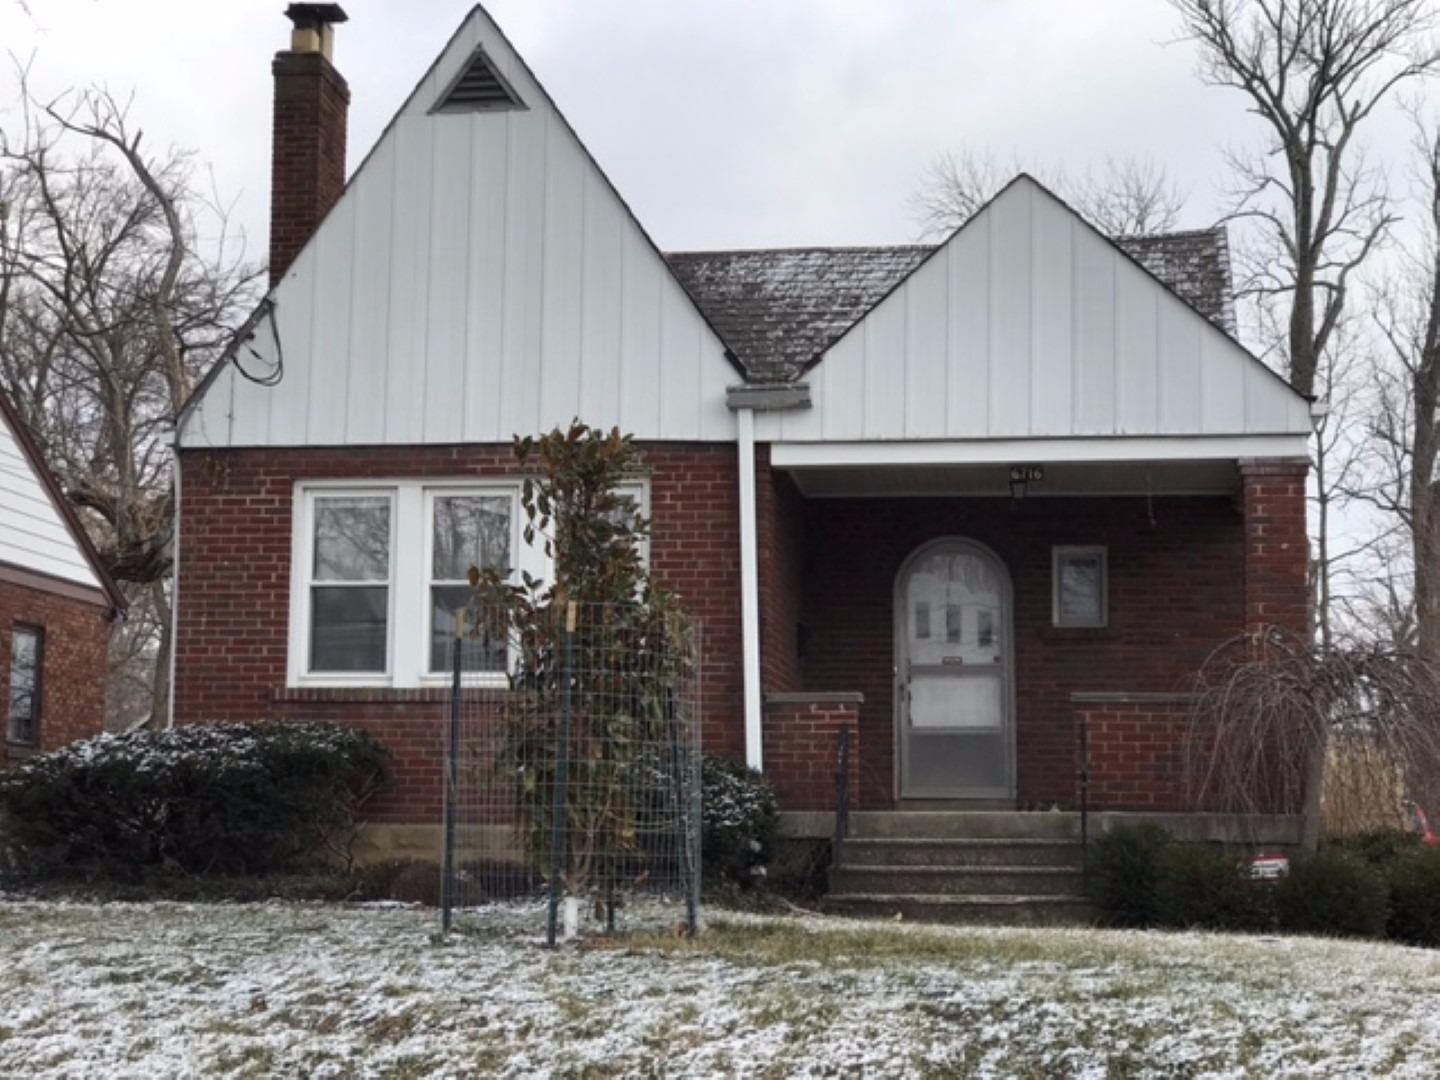 6716 Siebern Ave Silverton Oh 45236 Listing Details Mls